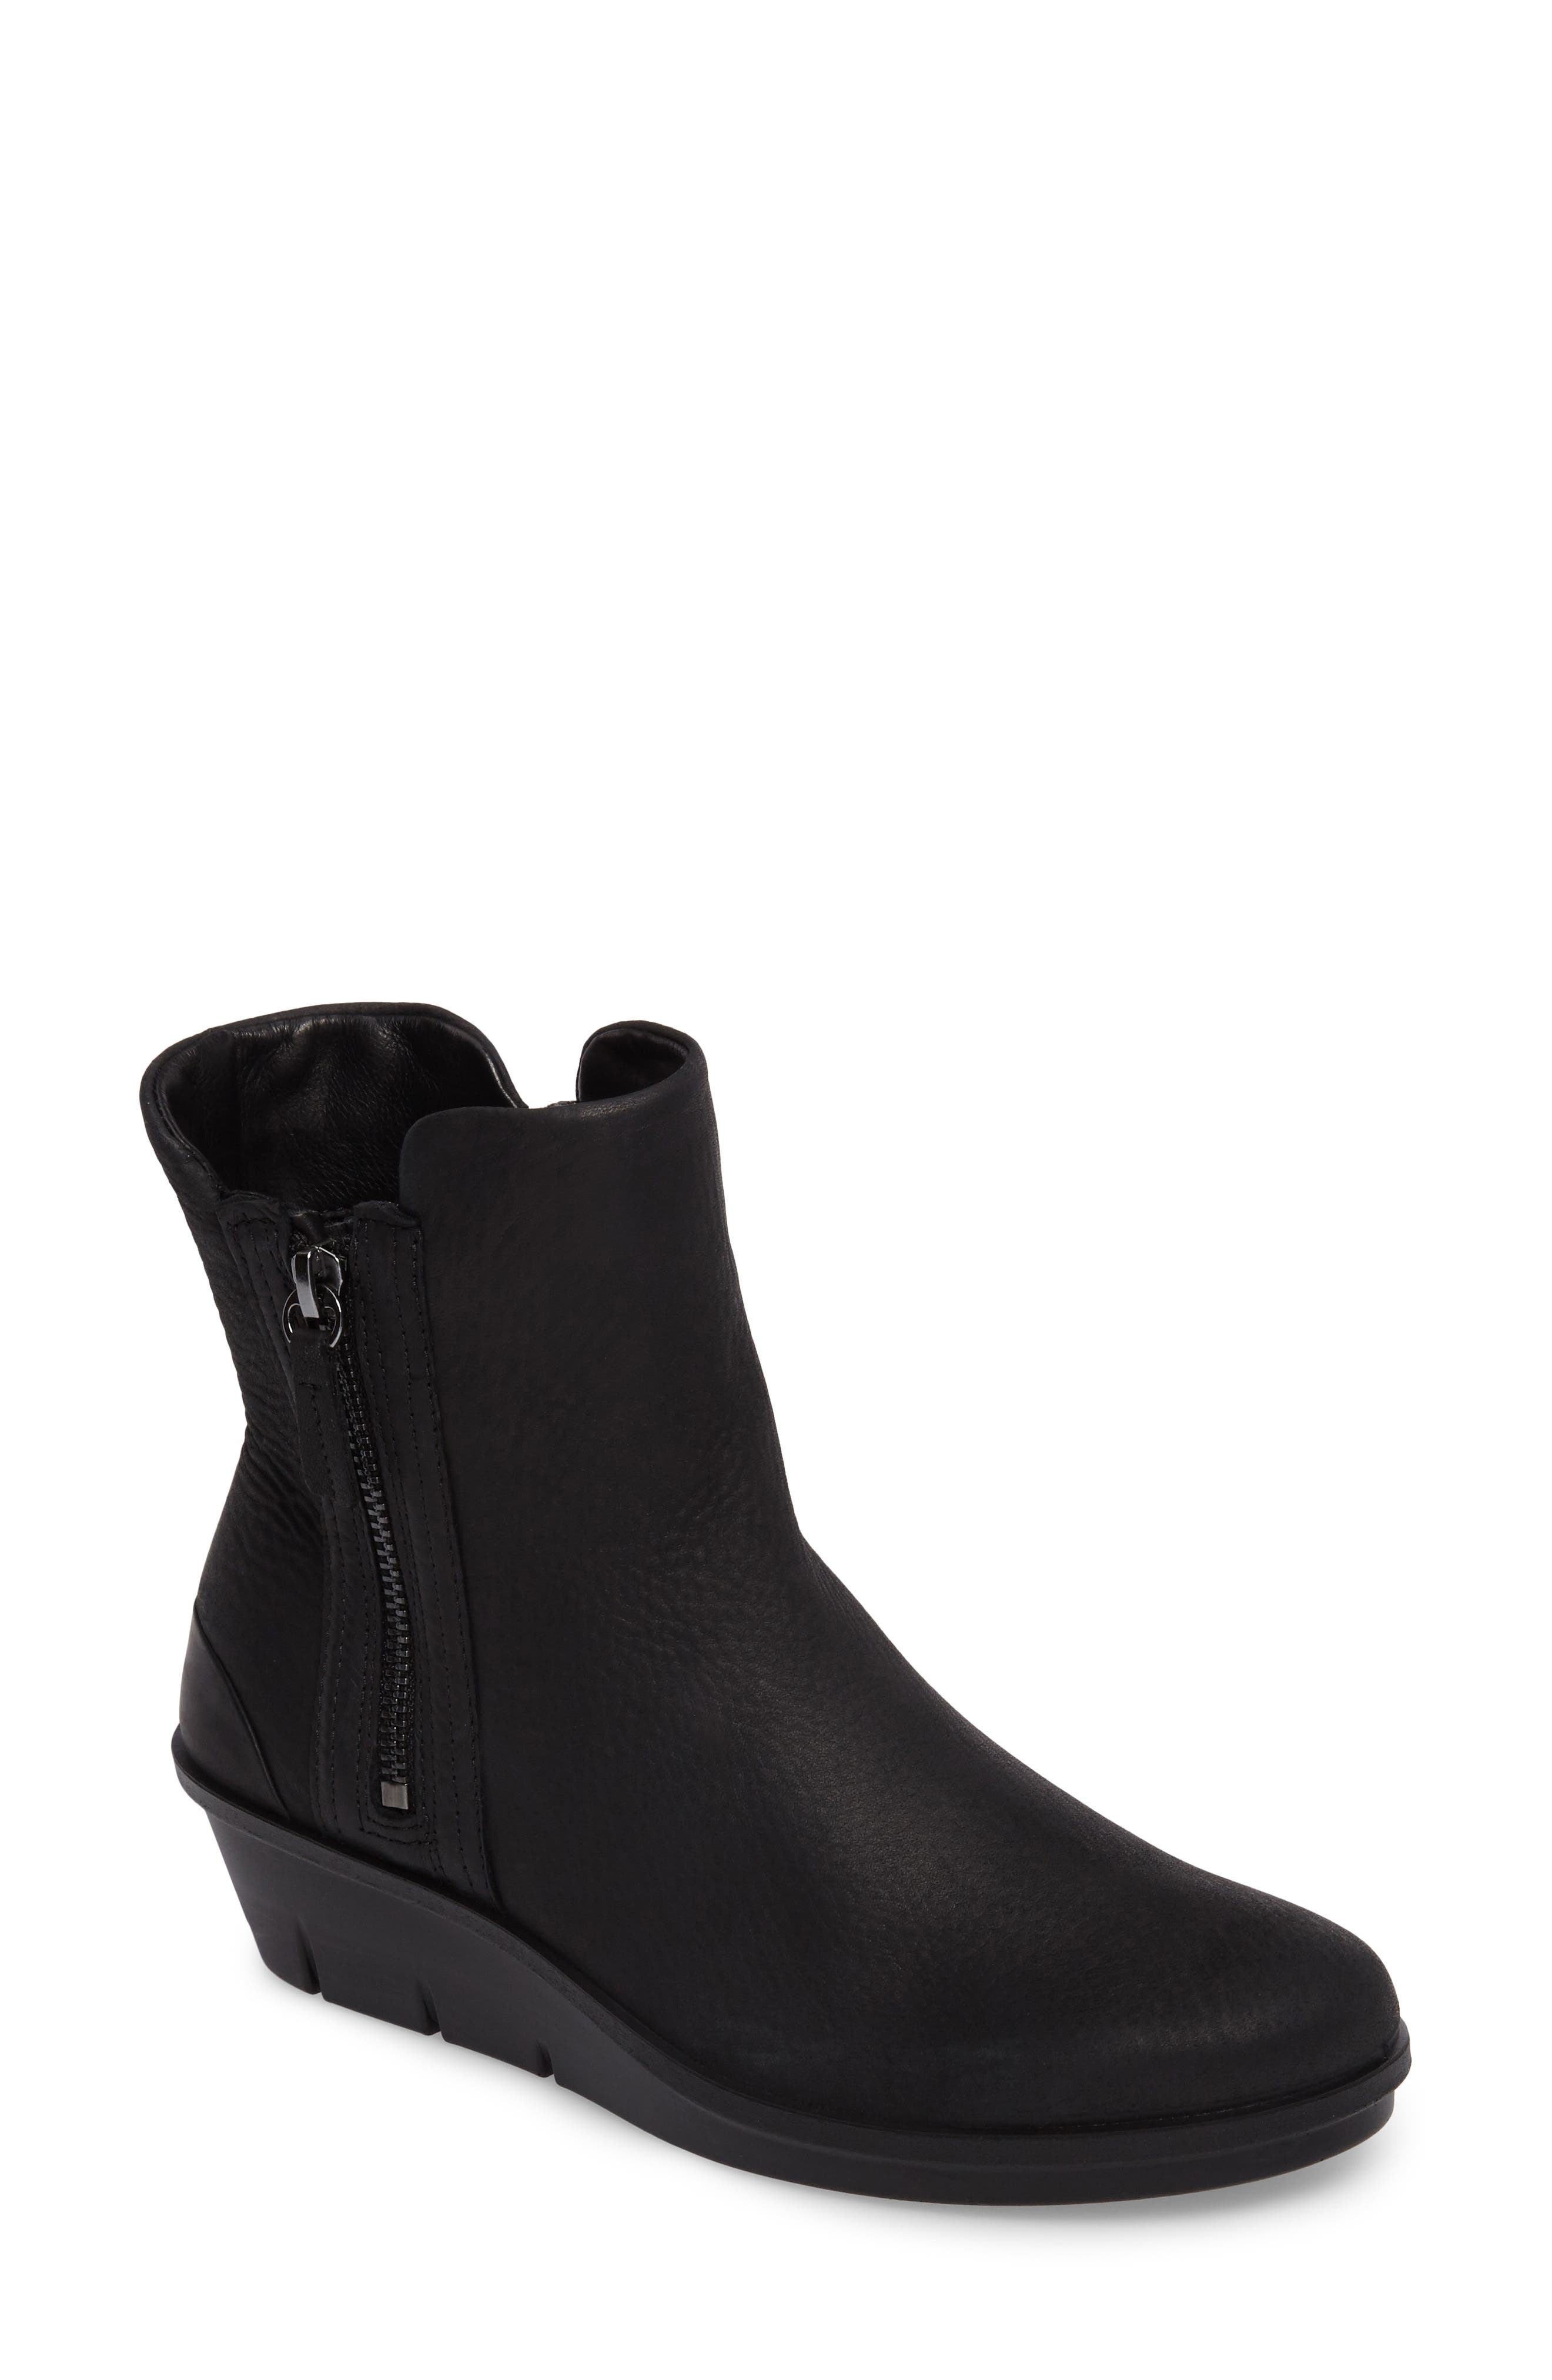 Skyler Notched Wedge Bootie,                             Main thumbnail 1, color,                             Black Leather